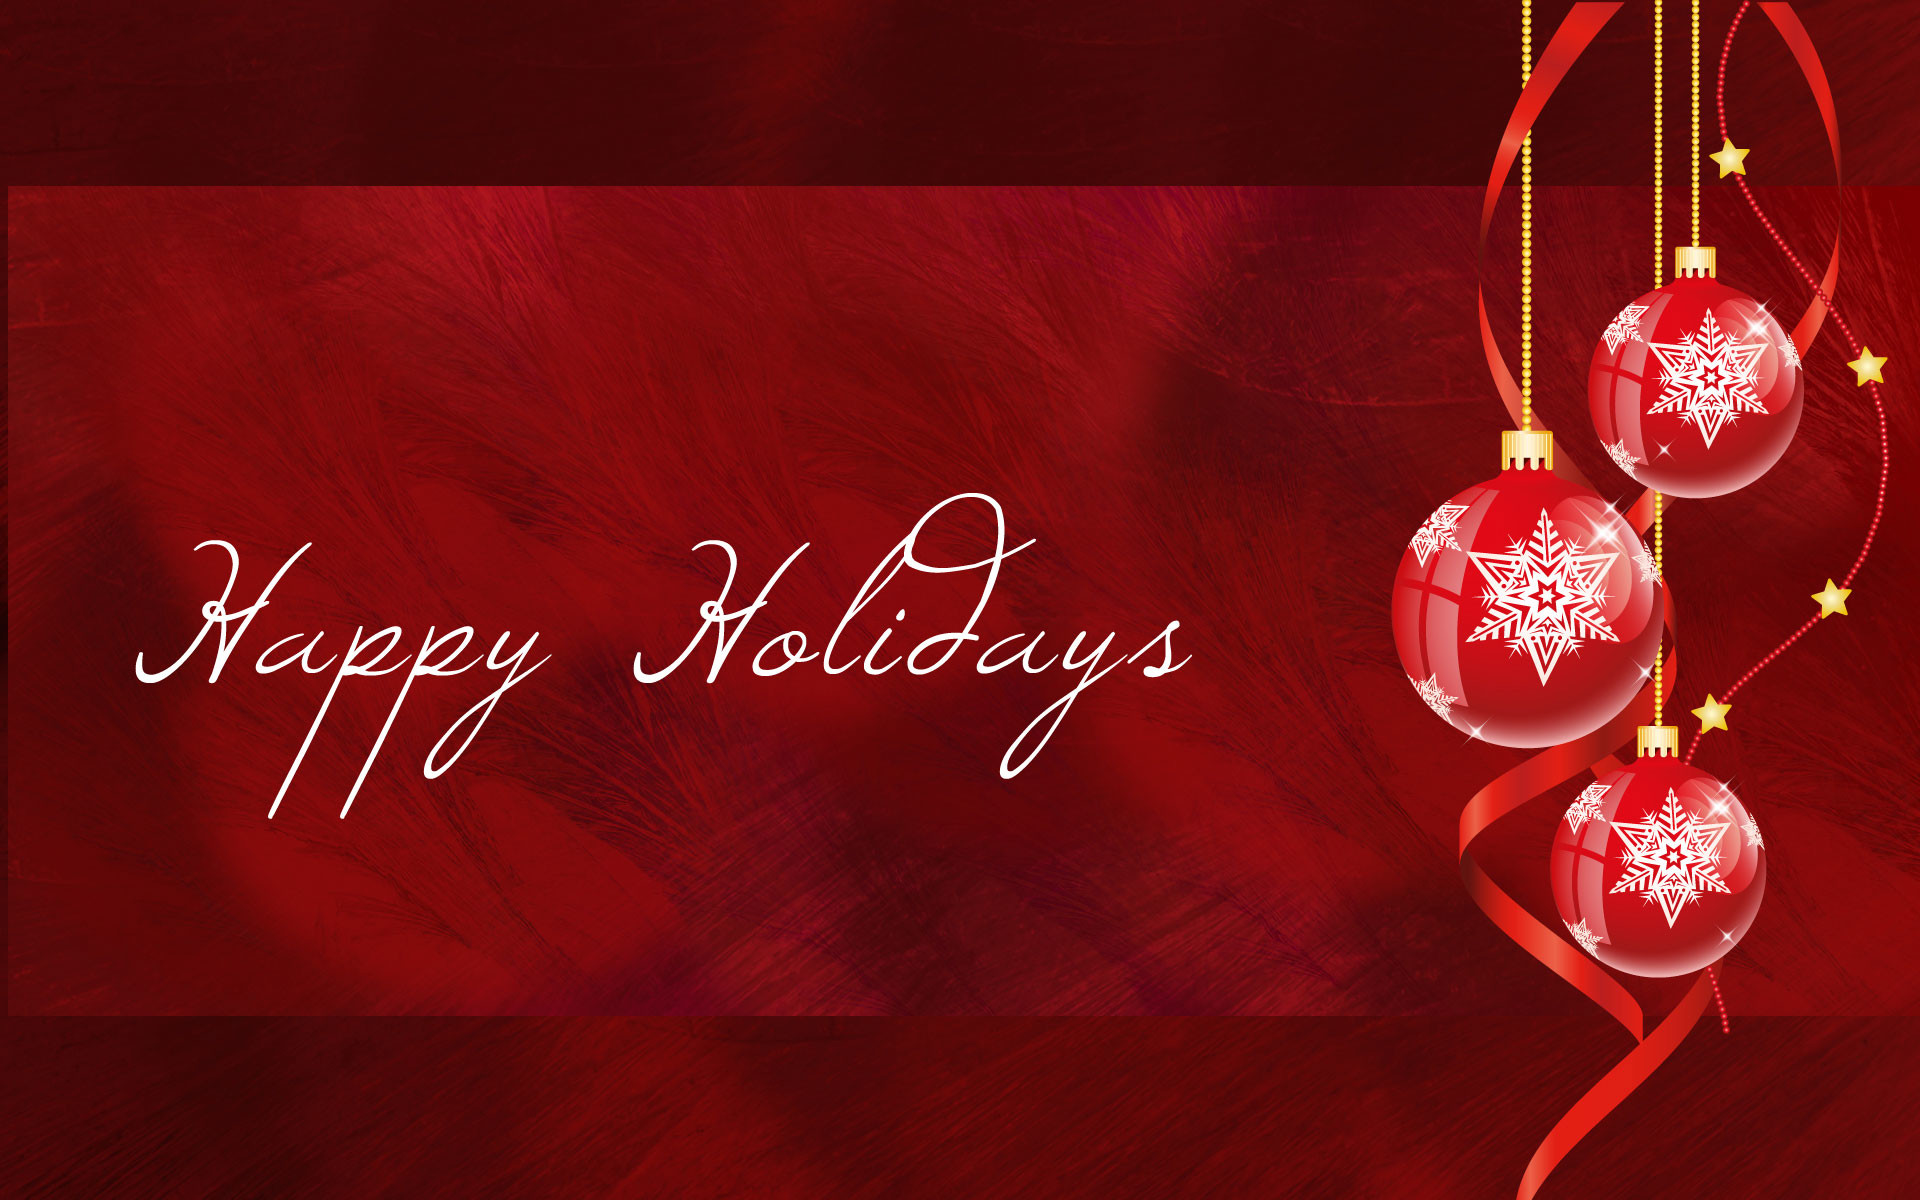 Res: 1920x1200, happy-holidays-white-red-ornaments-widescreen-wallpaper